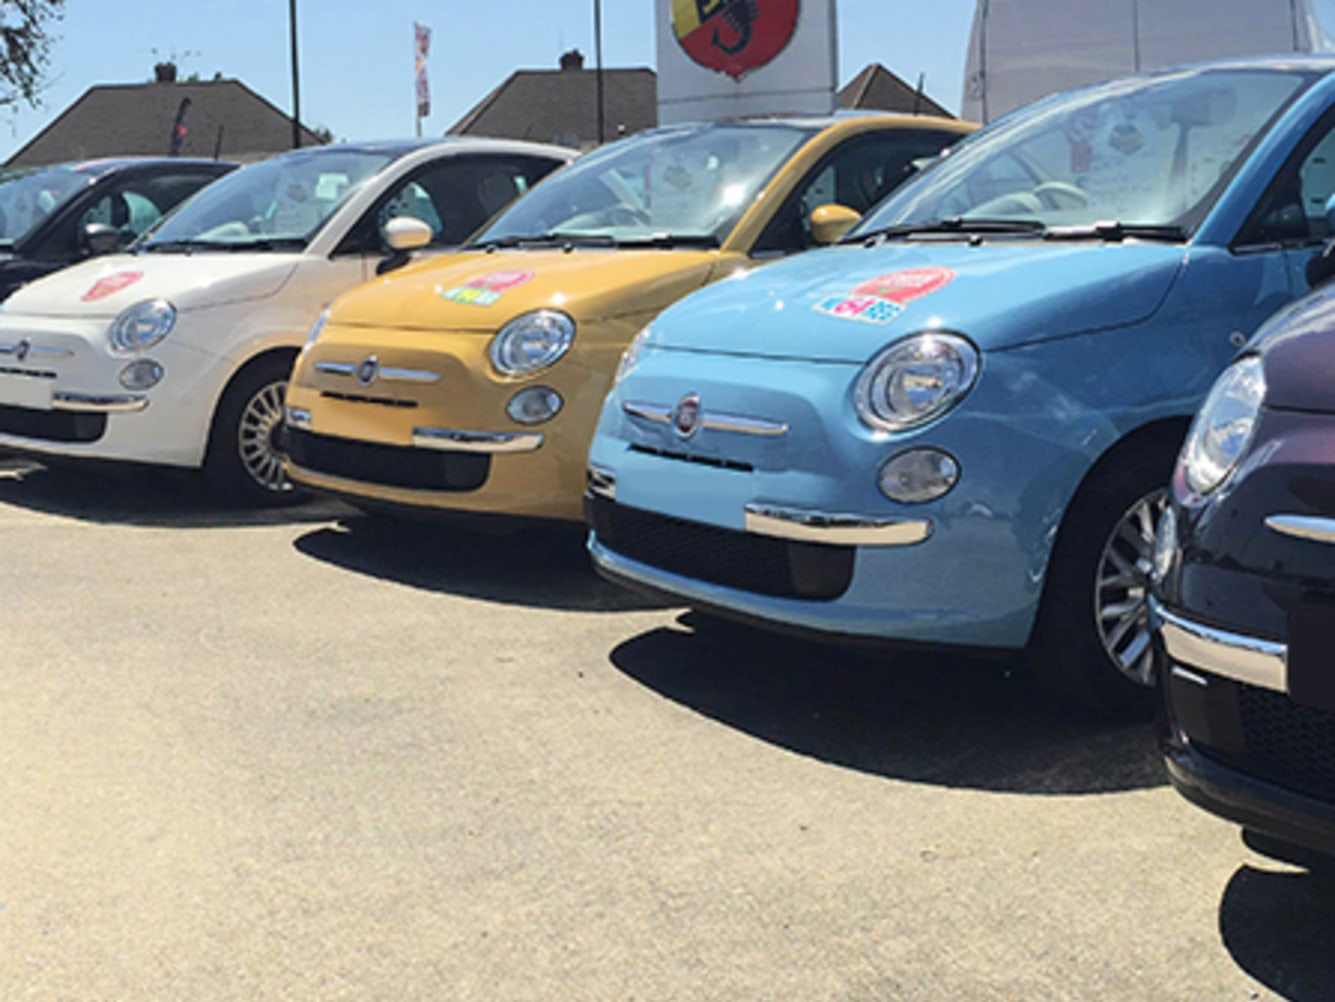 Contact Thames Fiat In Slough Thames Fiat